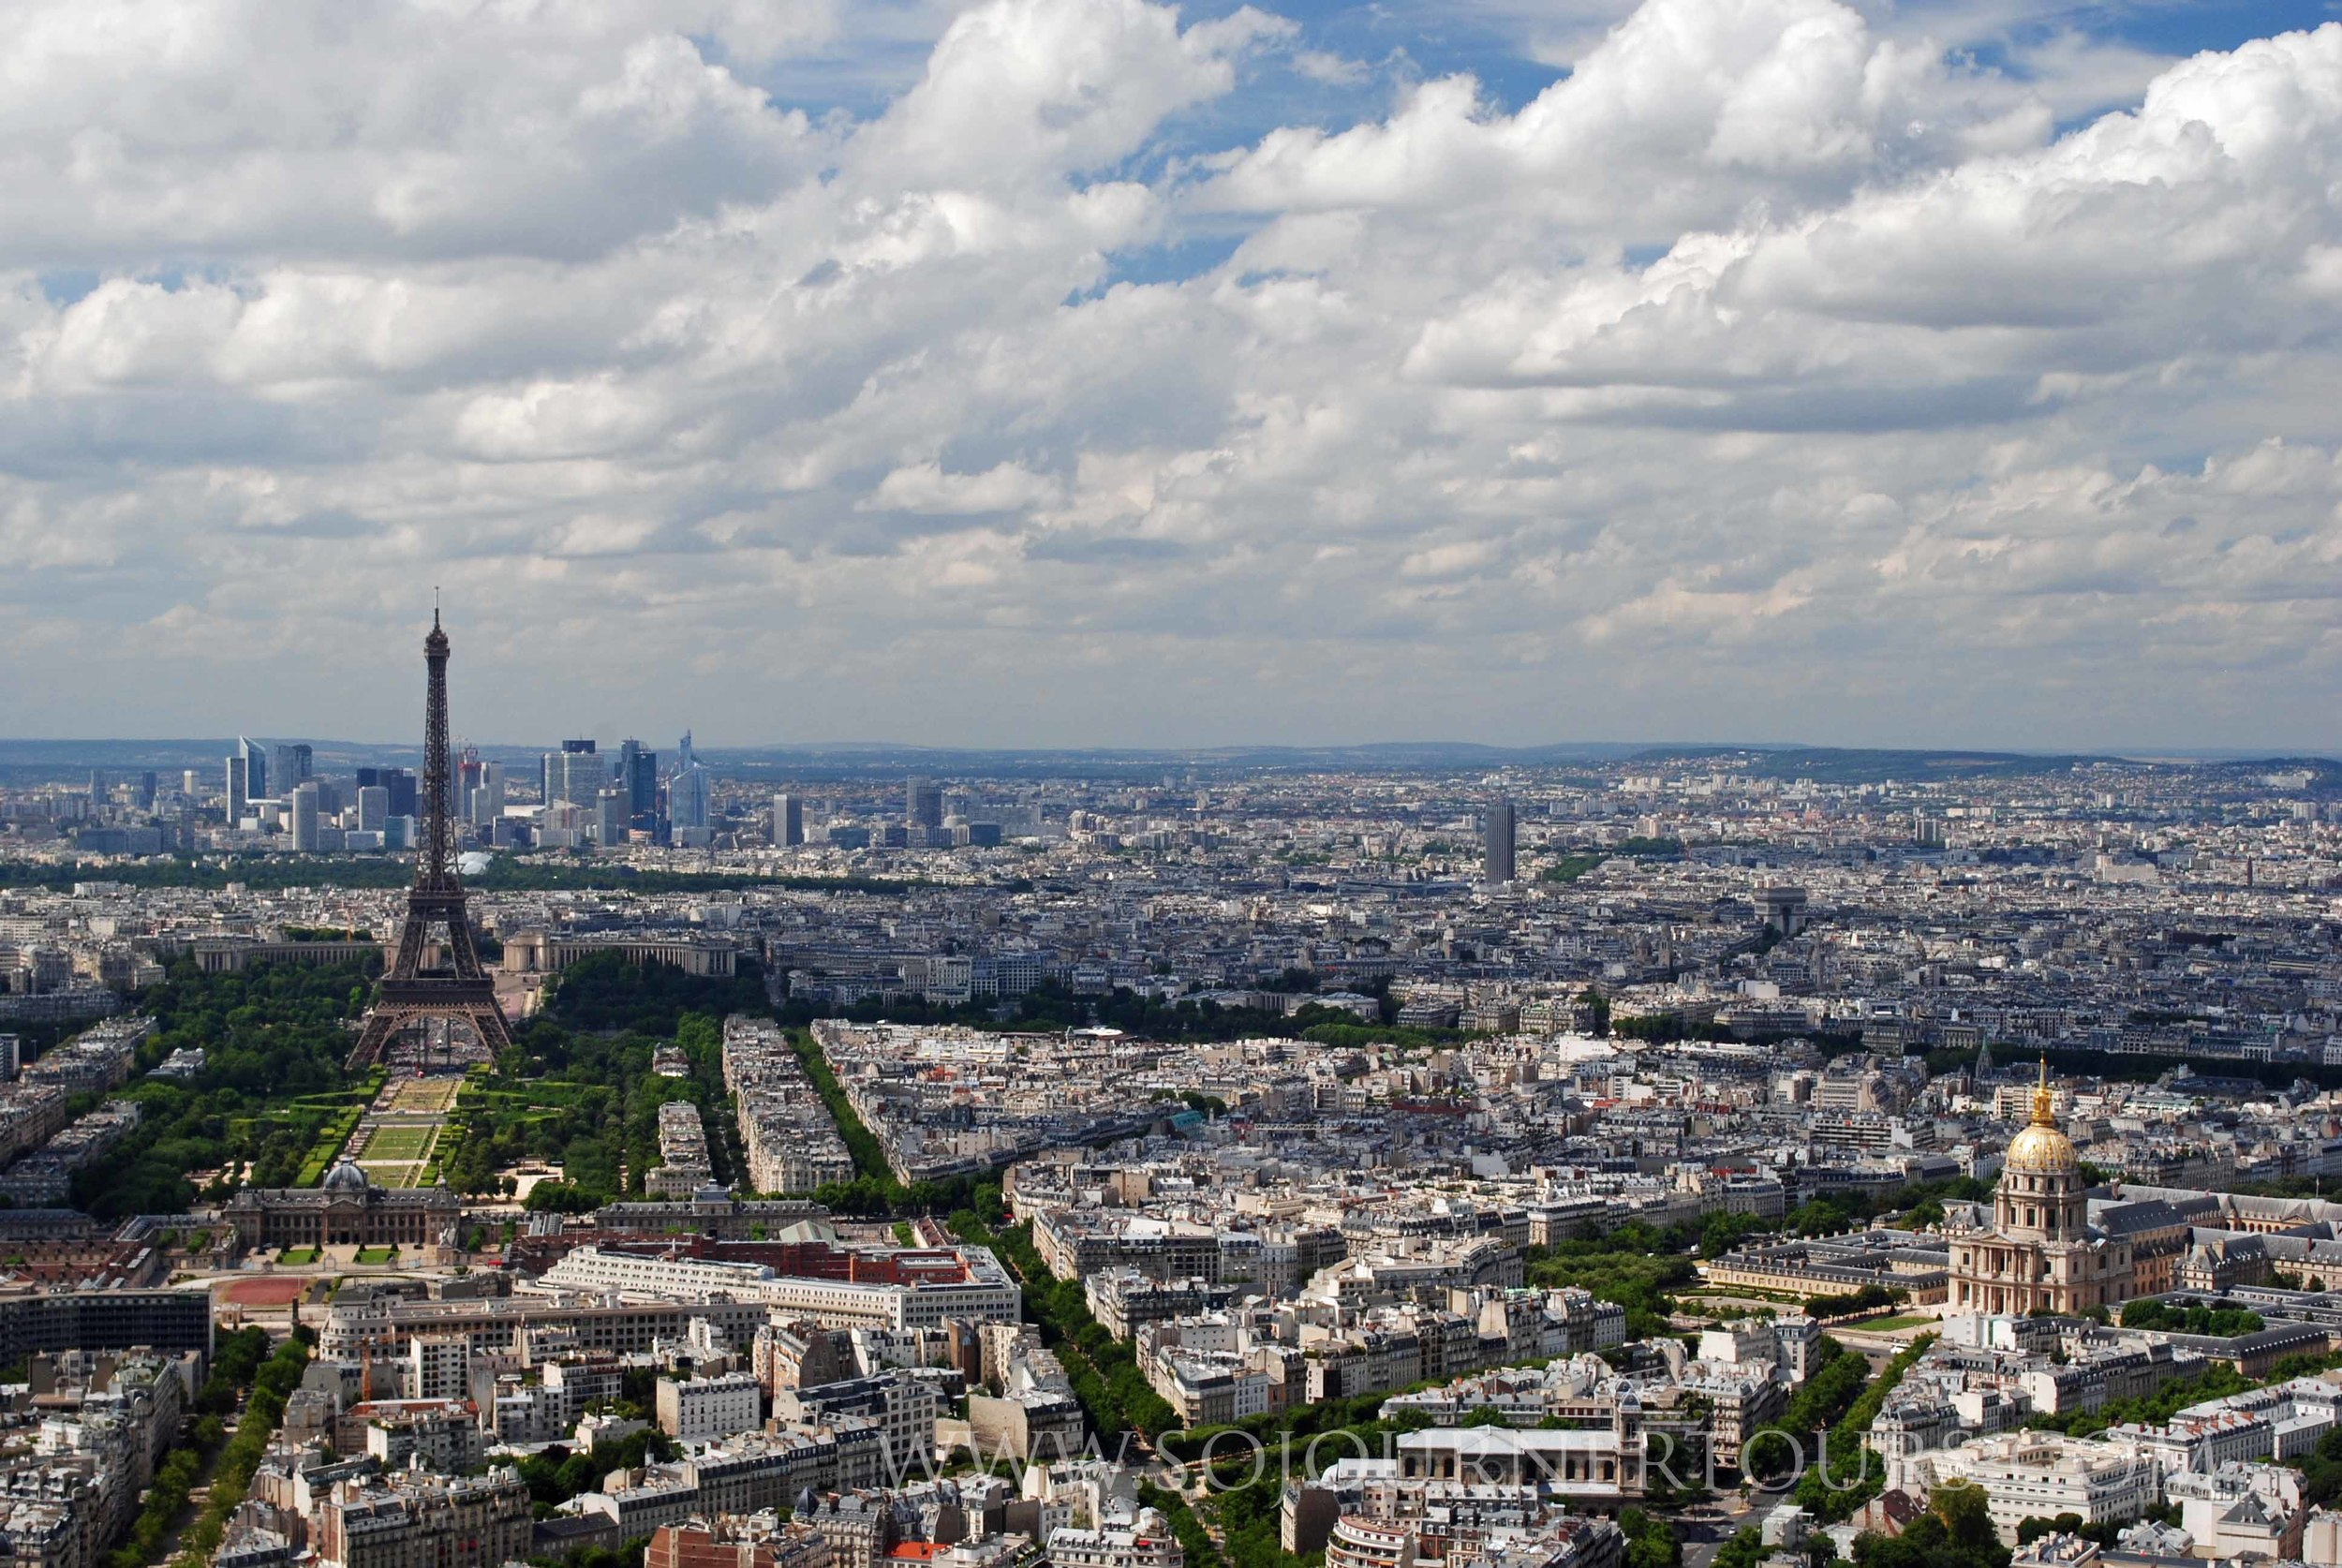 Montparnasse Tower: Paris, France (Sojourner Tours)